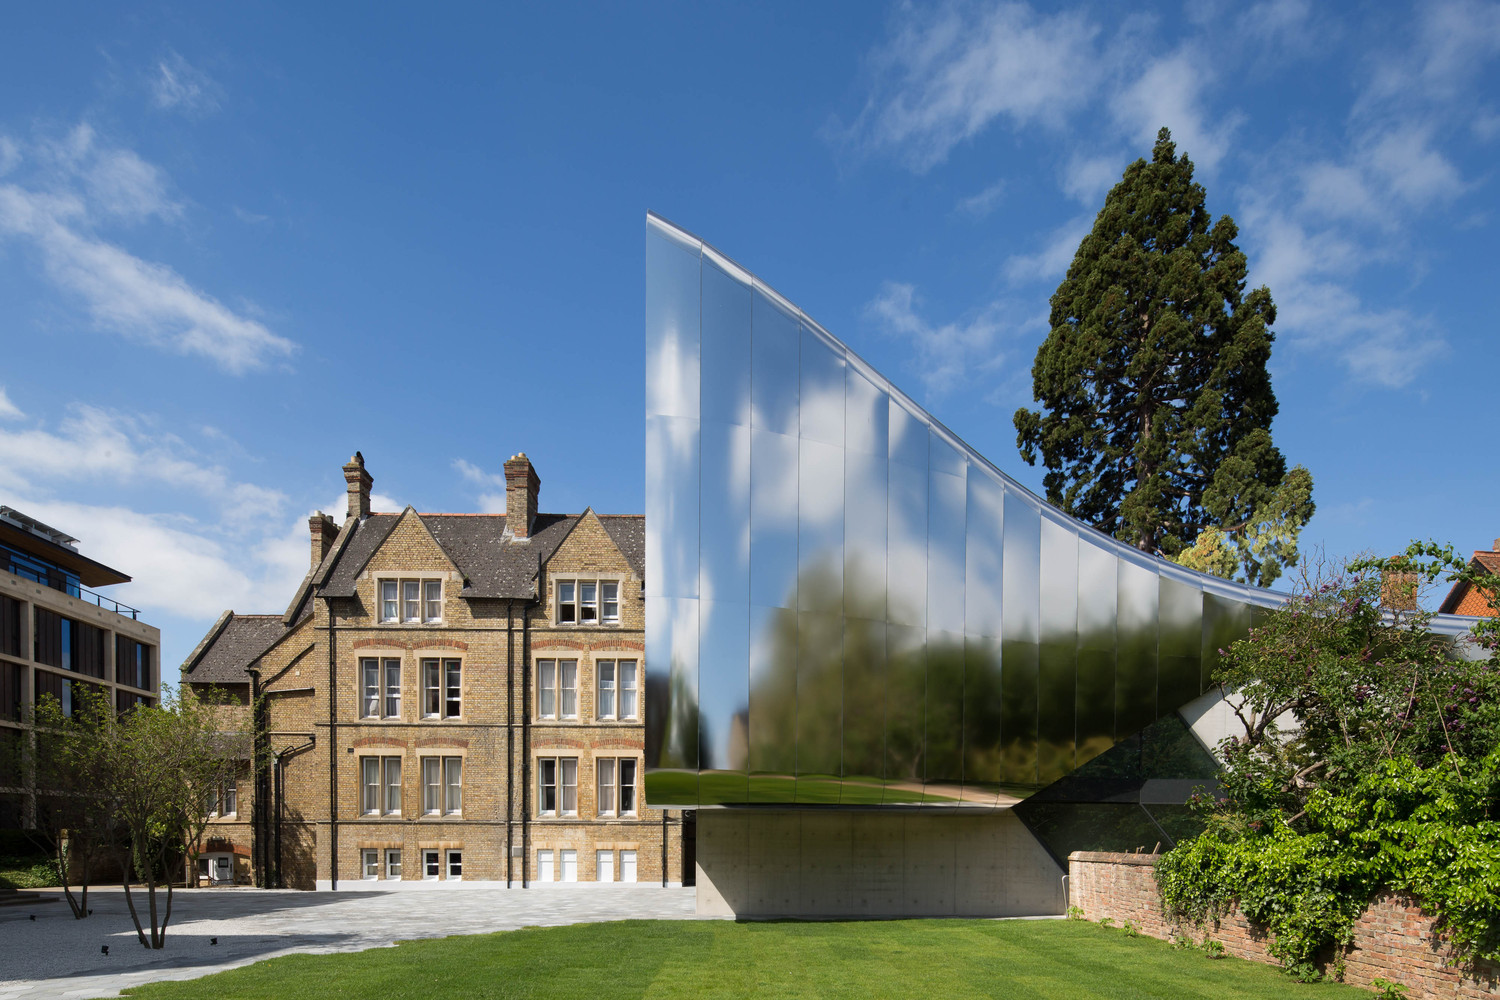 Best Buildings The Investcorp Building By Zaha Hadid Architects